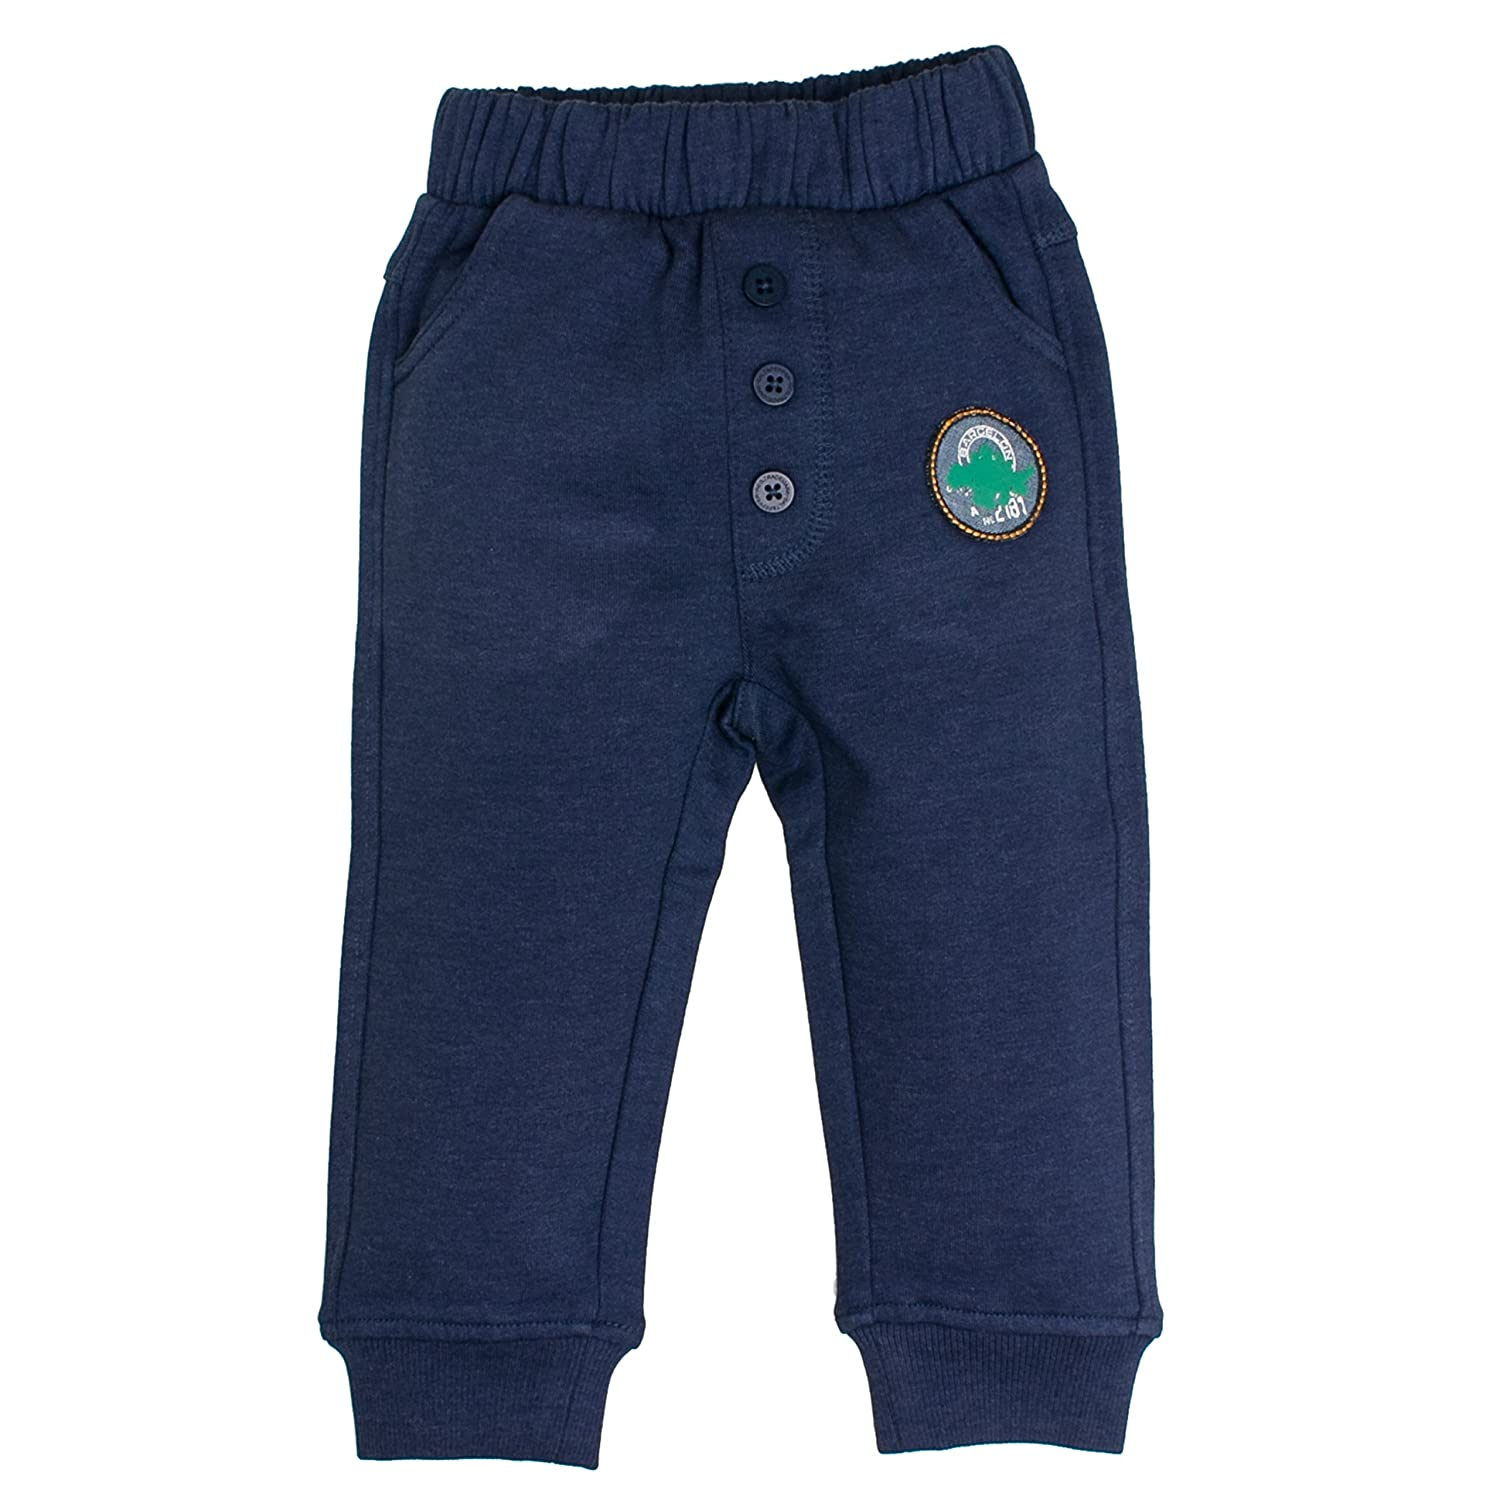 Salt & Pepper B Trousers Dino, Pantalon De Sport Bébé garçon SALT AND PEPPER 75217137